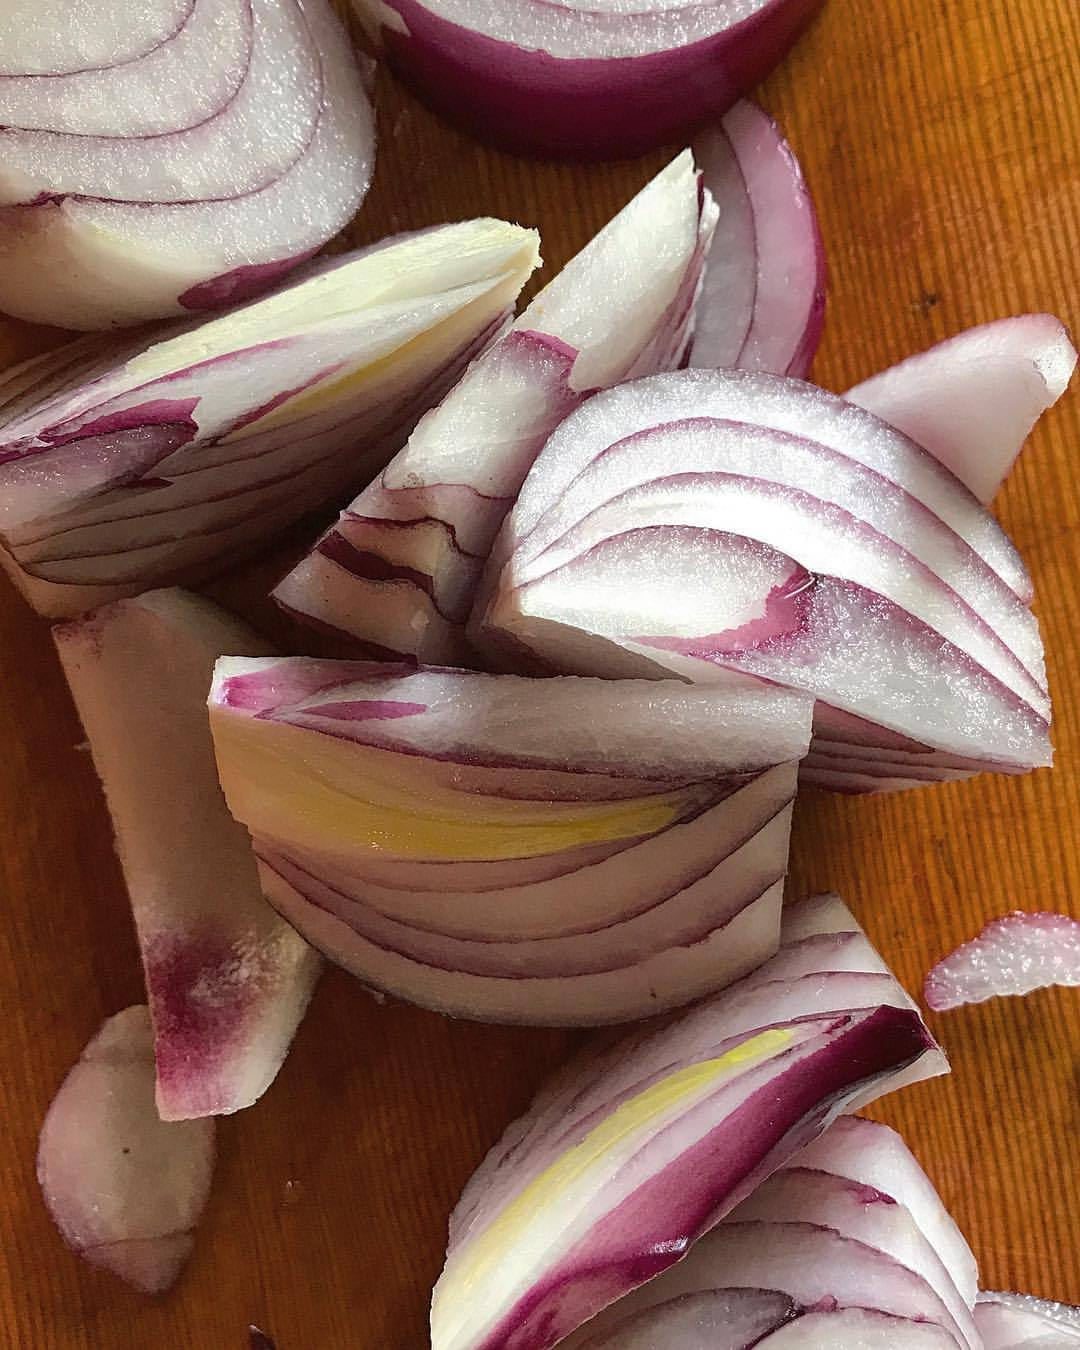 Red onion (Allium cepa).  #onion #allium #vegetables  (at At Home in Napa)